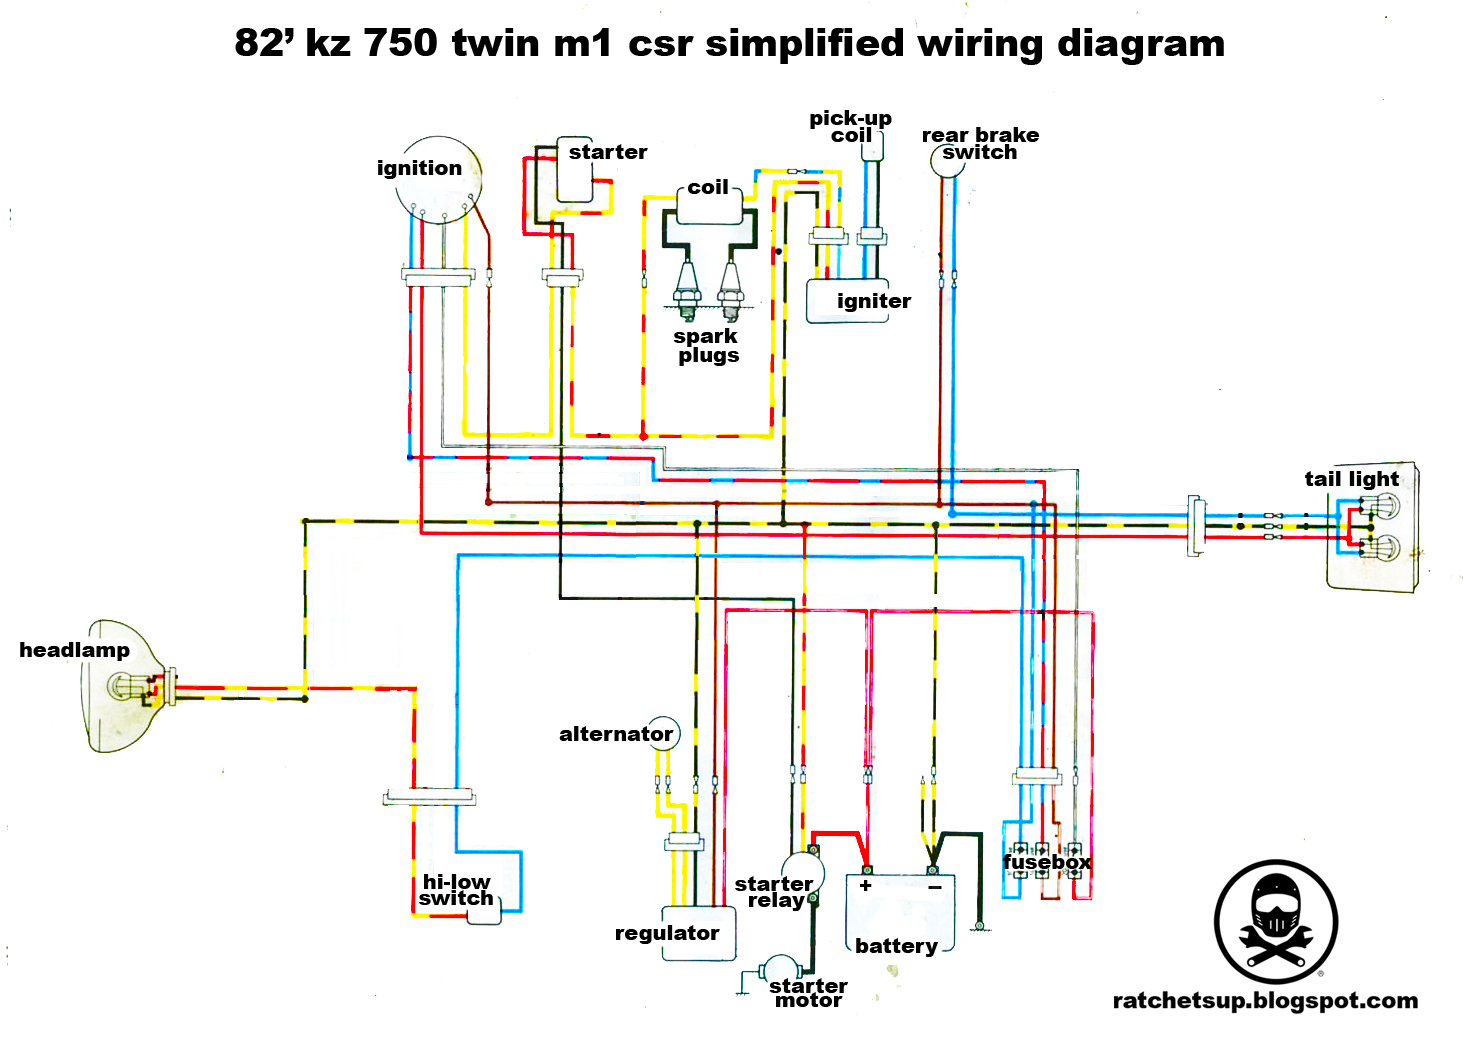 kz750+simple+diagram simplified minimal kz750 csr wiring diagram kzrider forum 1980 kawasaki 440 ltd wiring diagram at bakdesigns.co